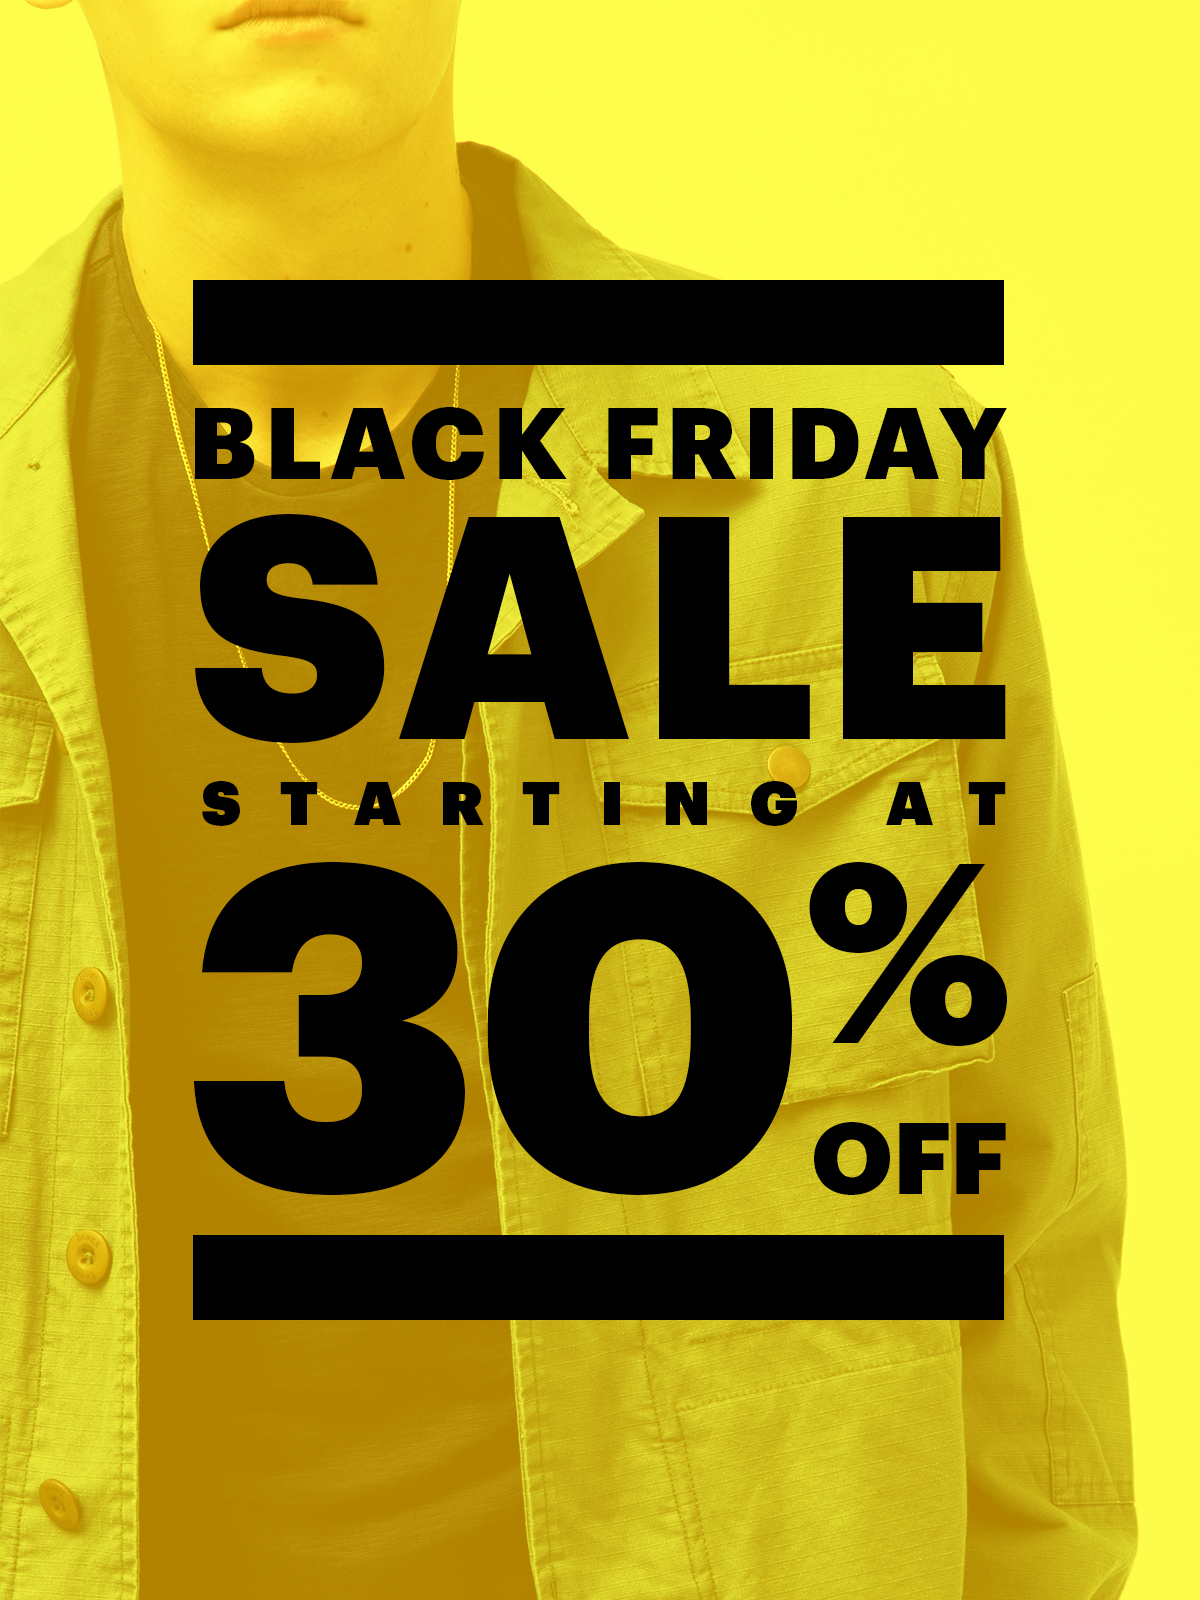 Black Friday Continues: 30% Off!